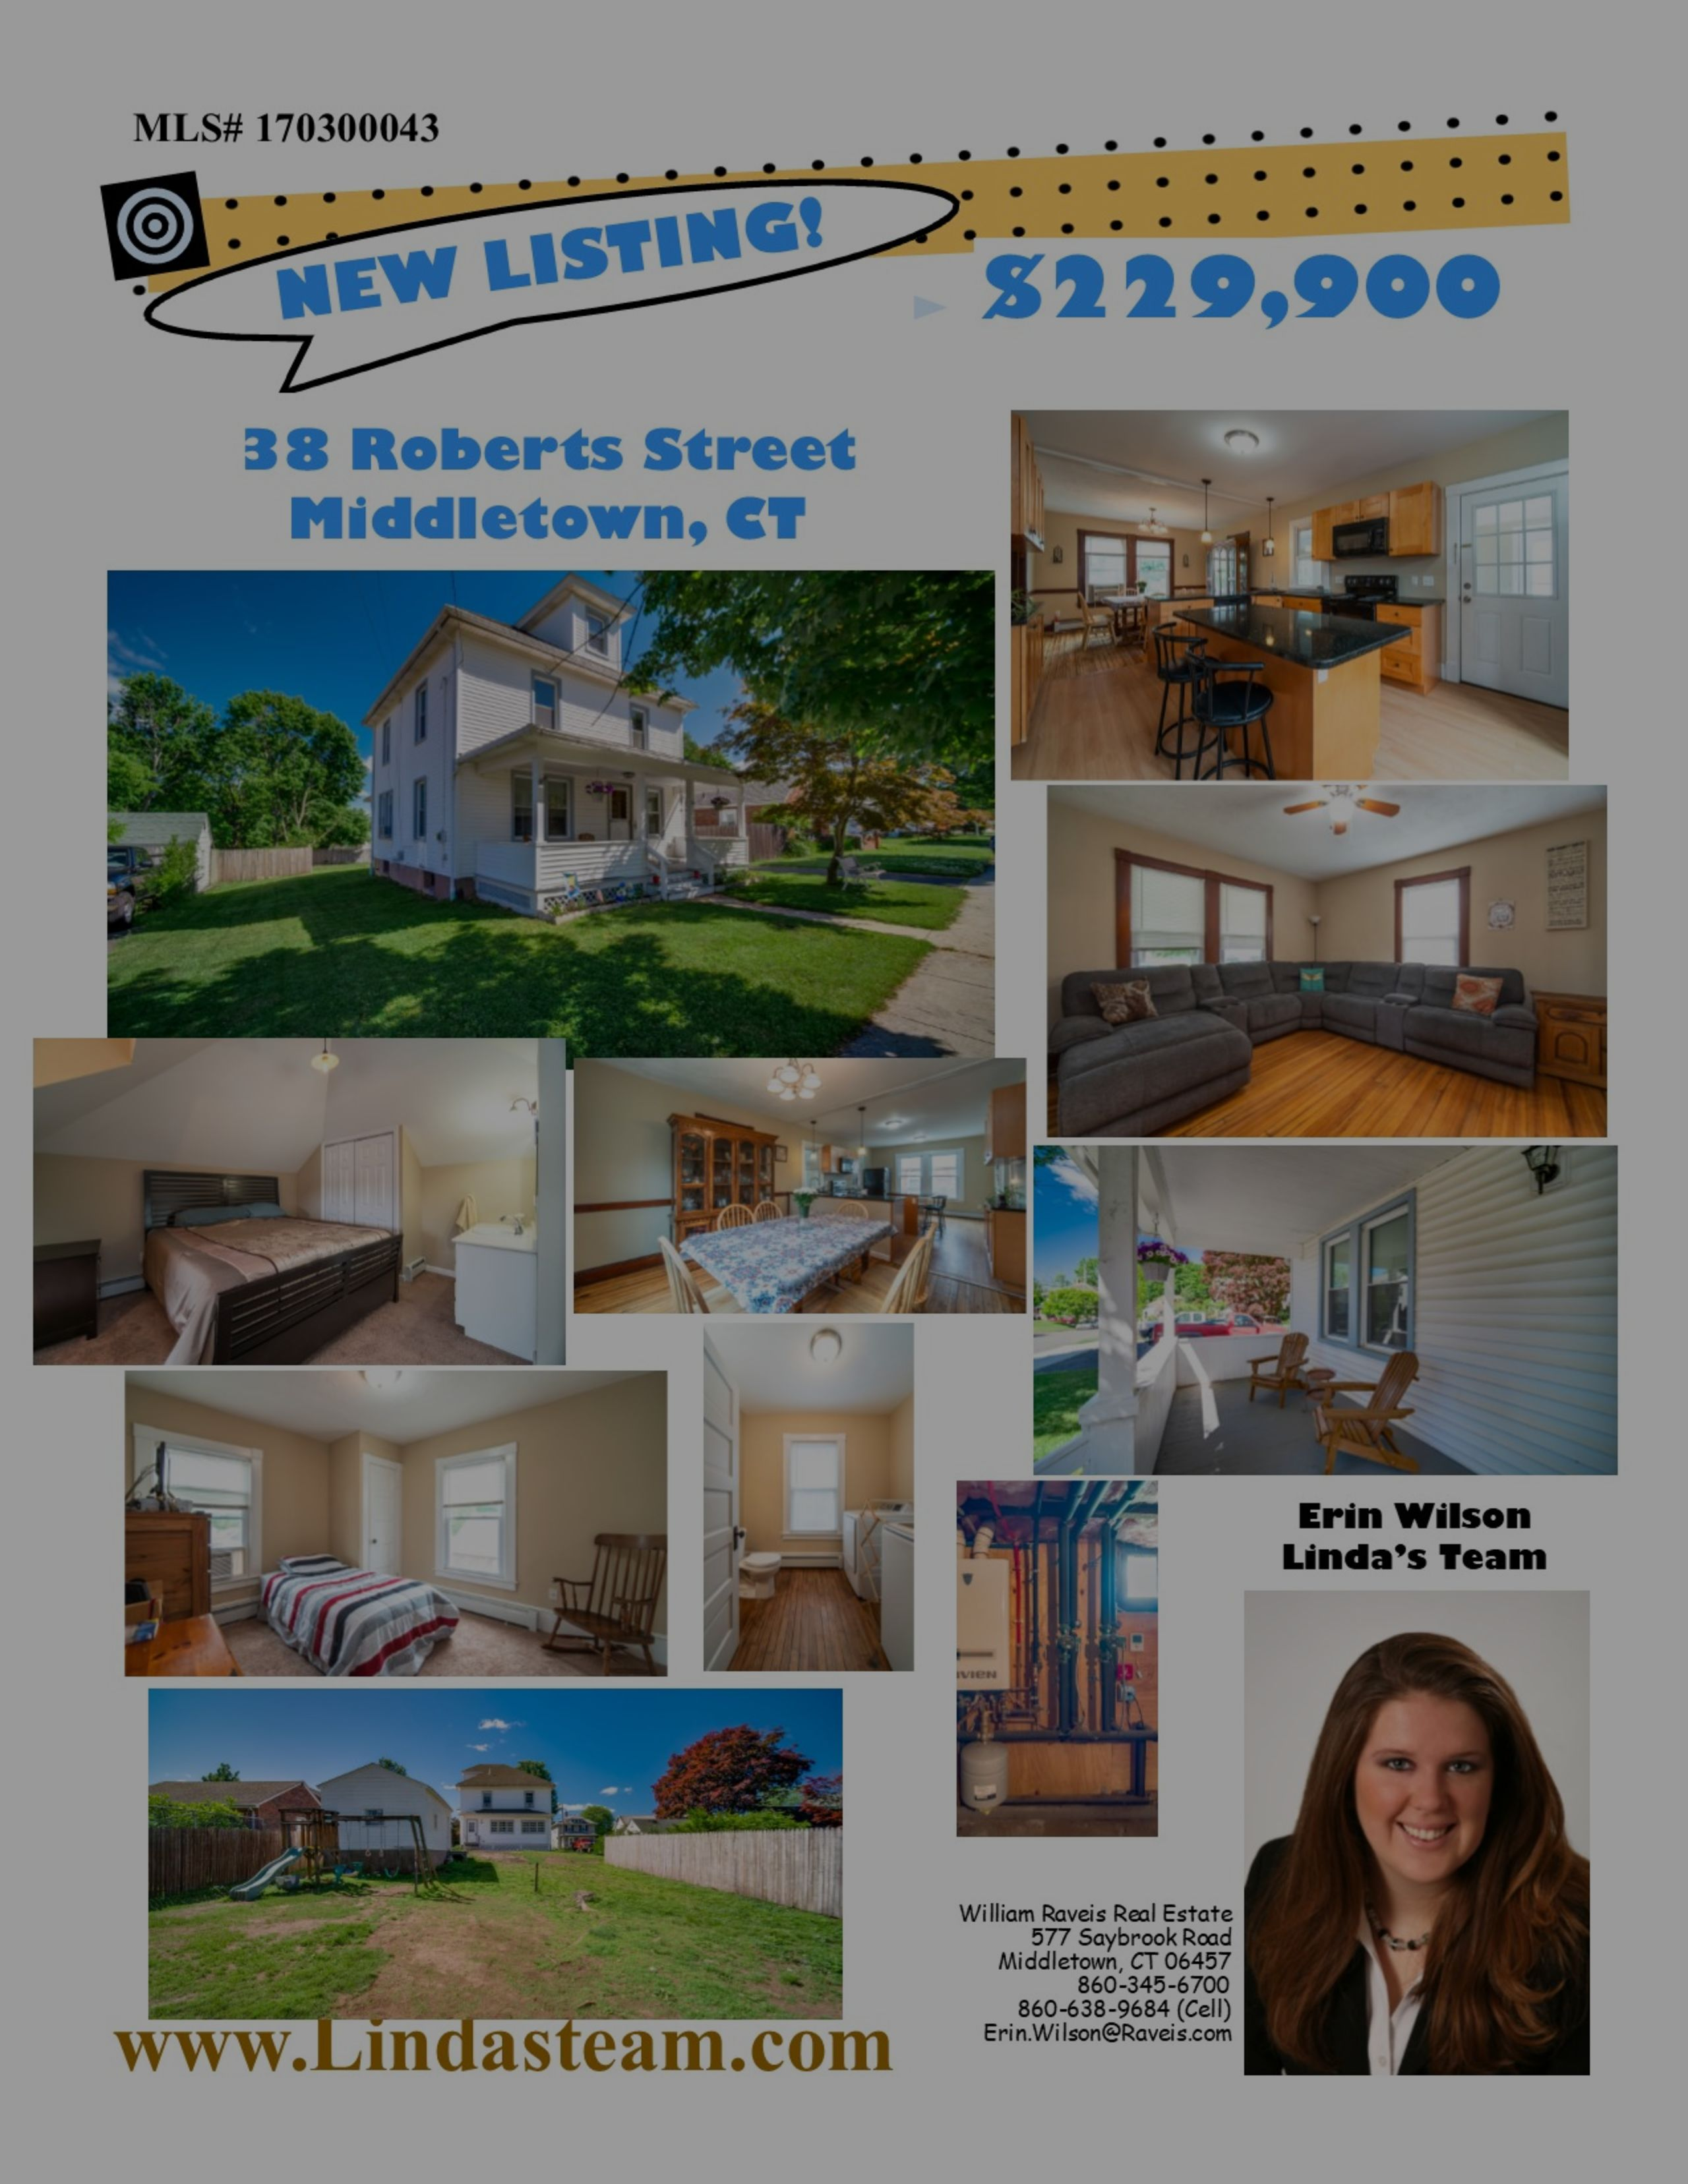 NEW LISTING in Middletown!